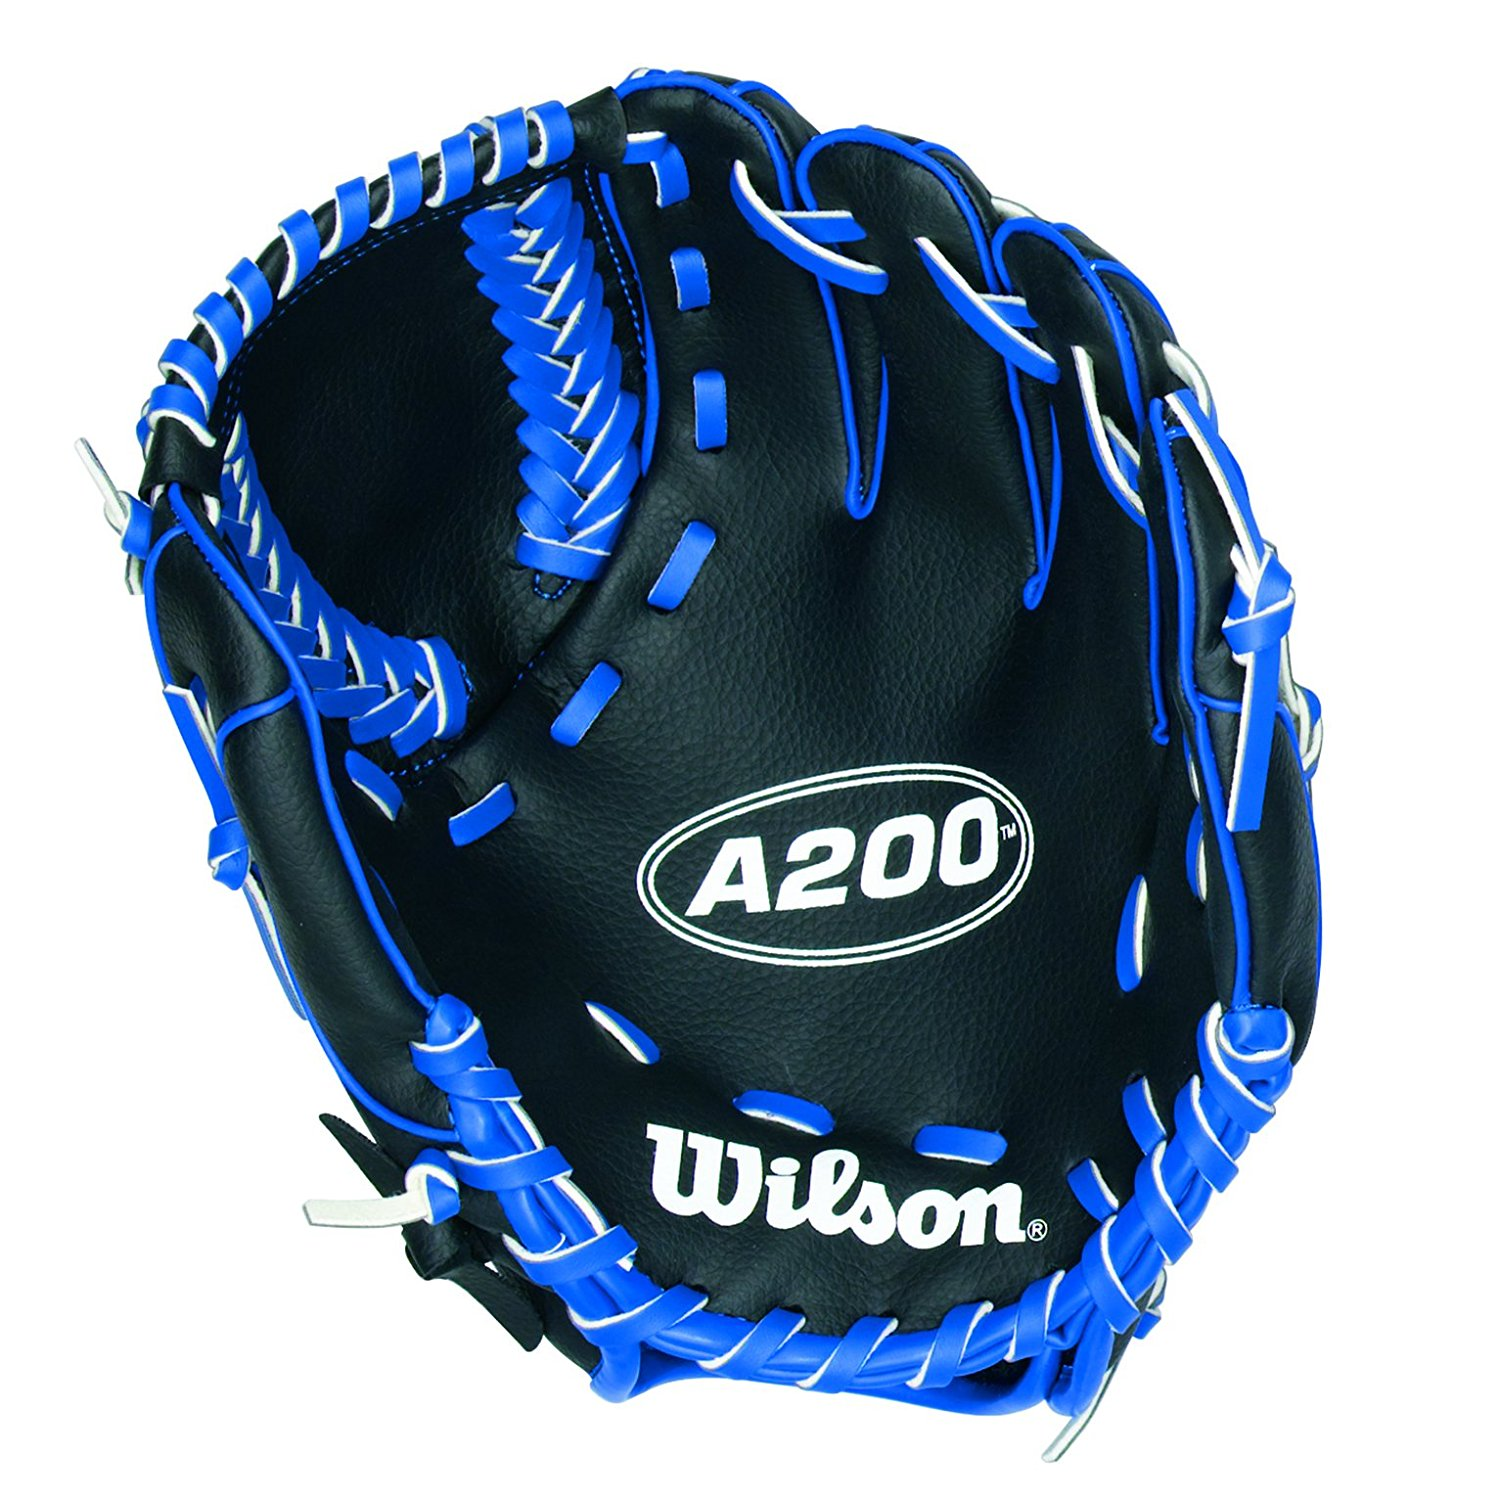 Wilson A200 Series 10 Inch Blue/Black Baseball Mitt